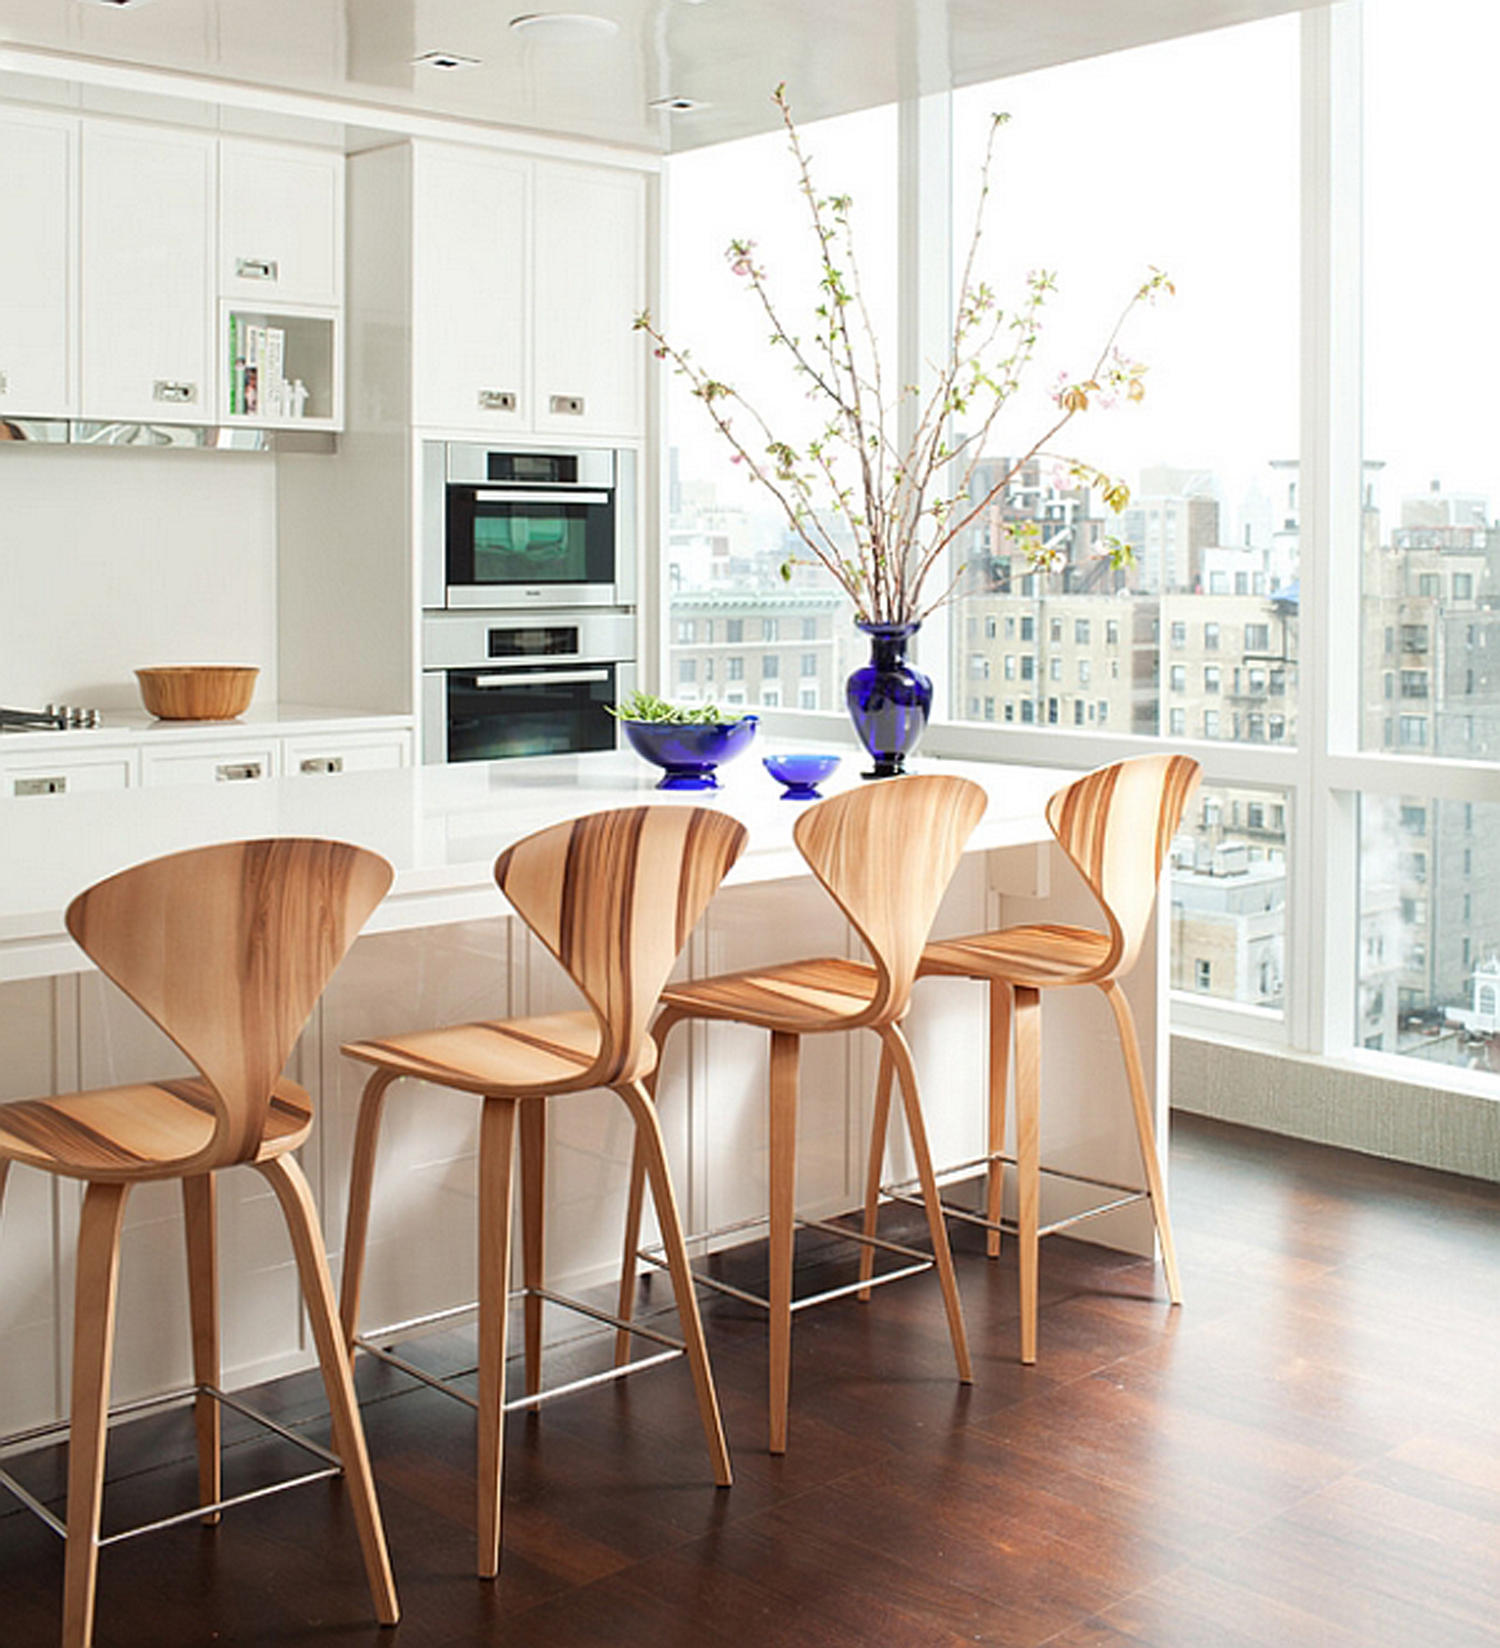 Rustic wooden stools in clean kitchen